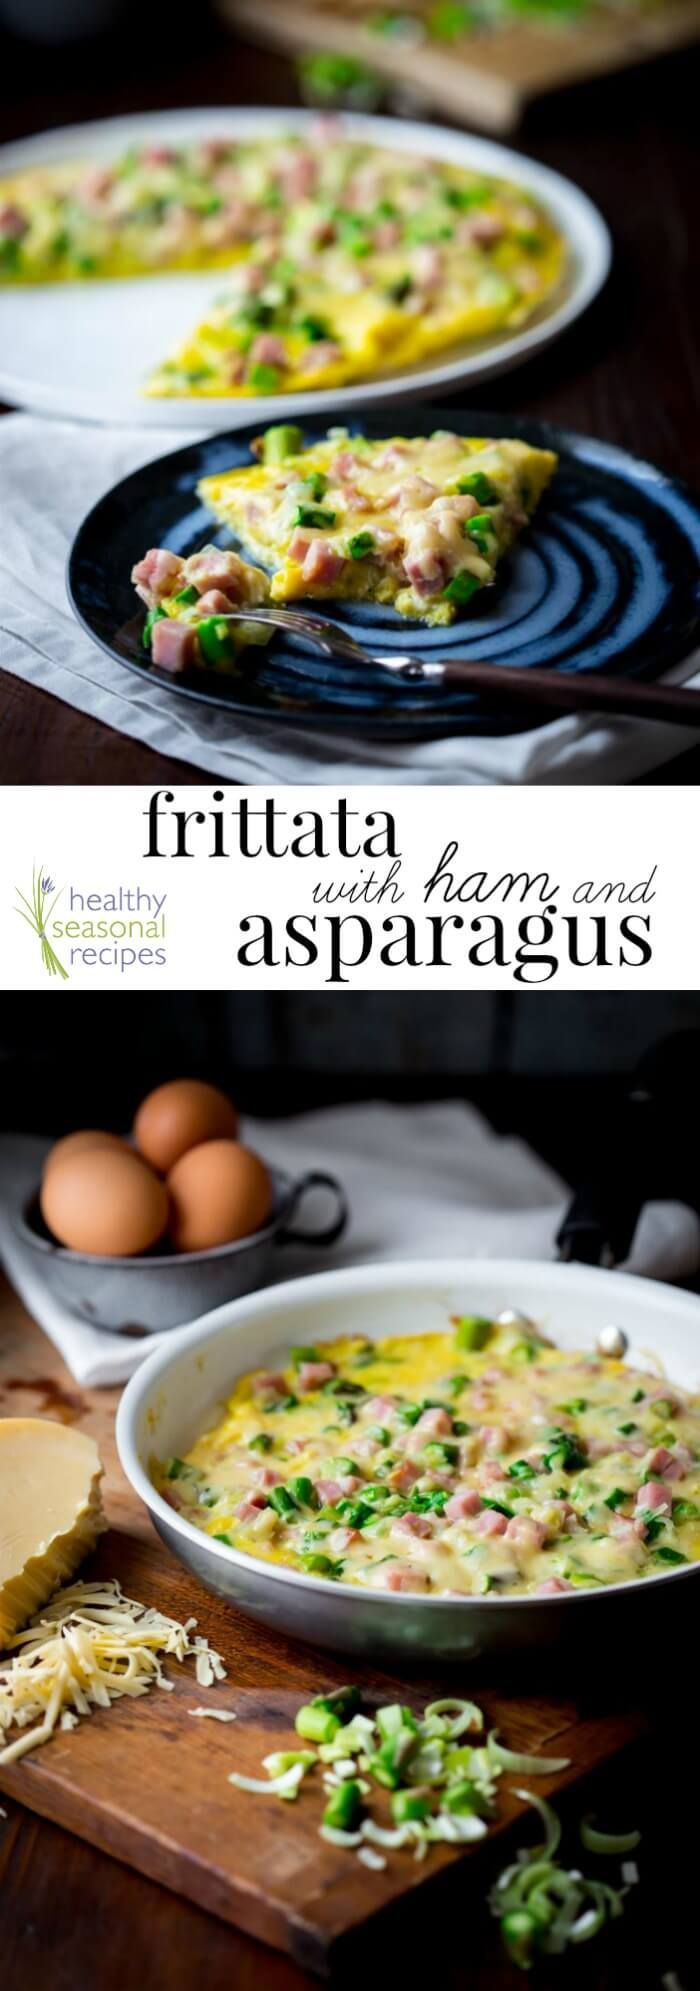 Frittata with Ham and Asparagus. Ready in just 20 minutes and gives you 23 grams of protein! Perfect for Easter brunch or a weeknight meal. Healthy Sesonal Recipes   Healthy Seasonal